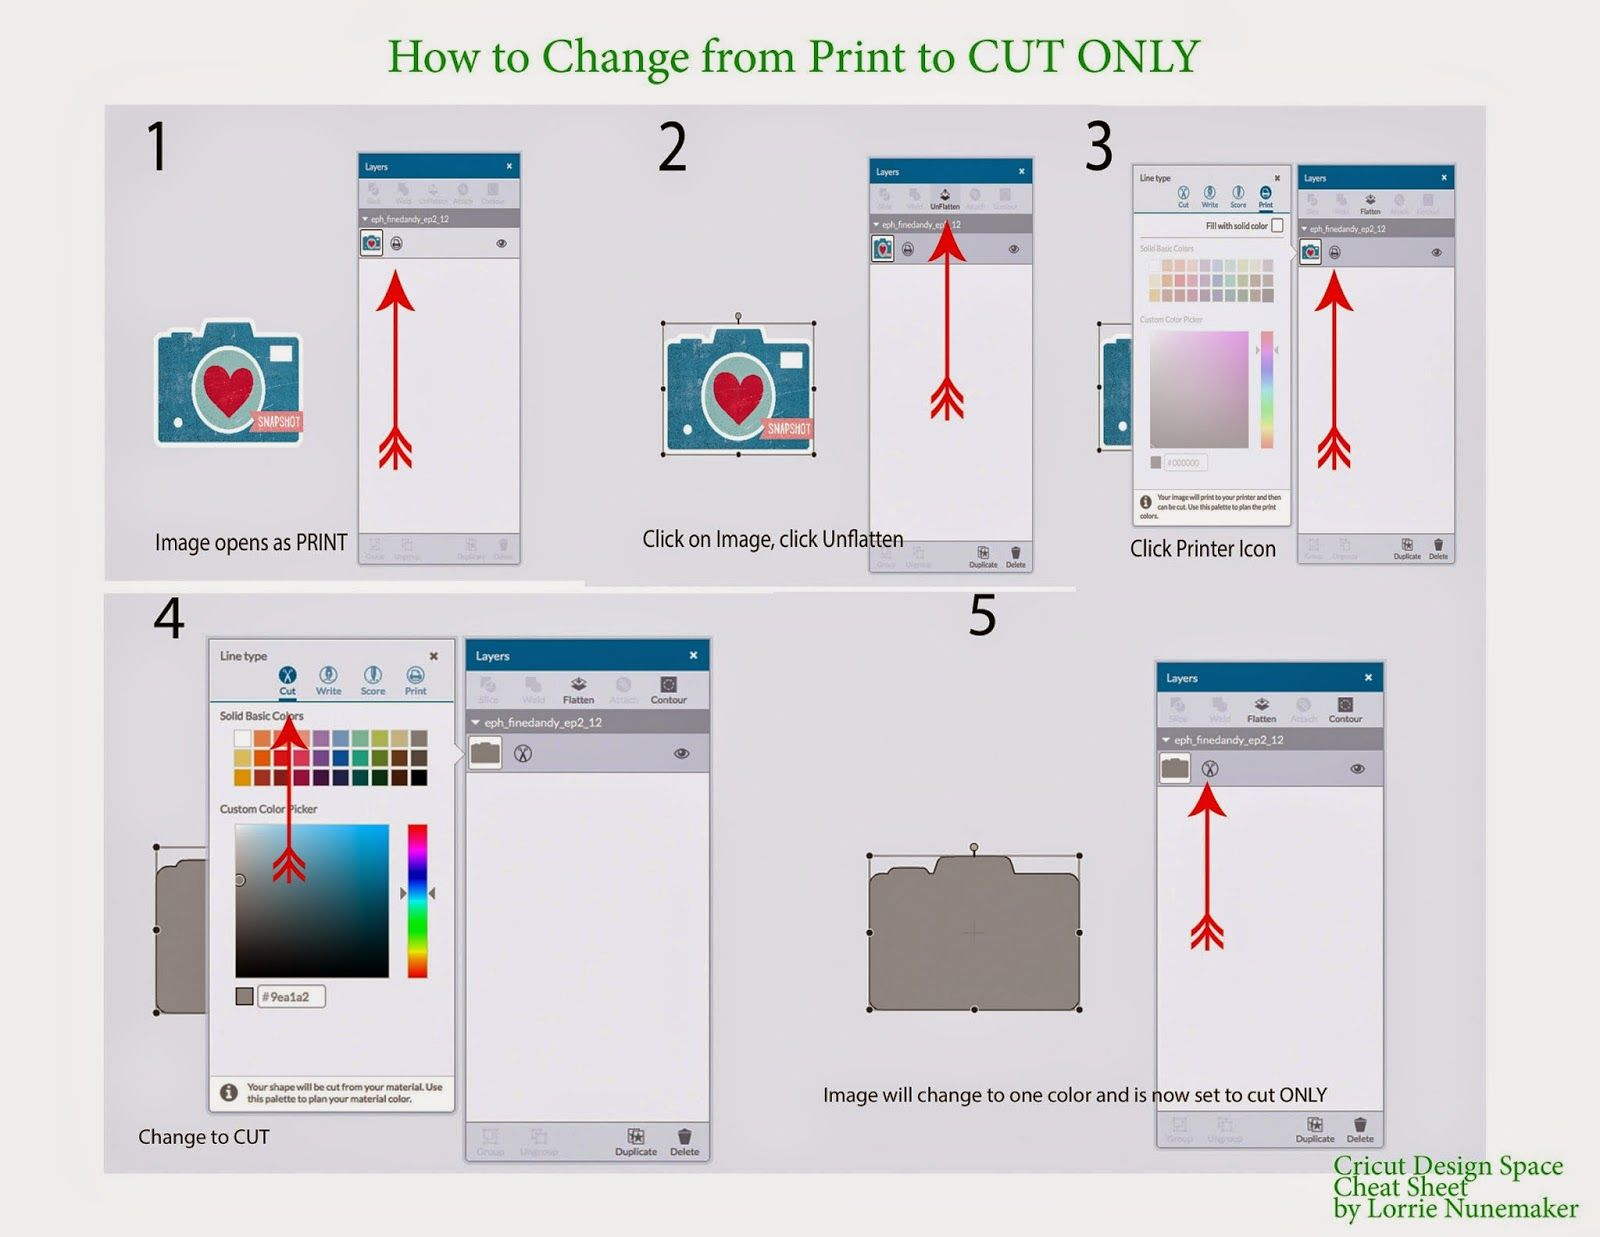 Lorrie's Story: Cricut Design Space Cheat Sheets For Quick Reference To  Frequently Asked Questions